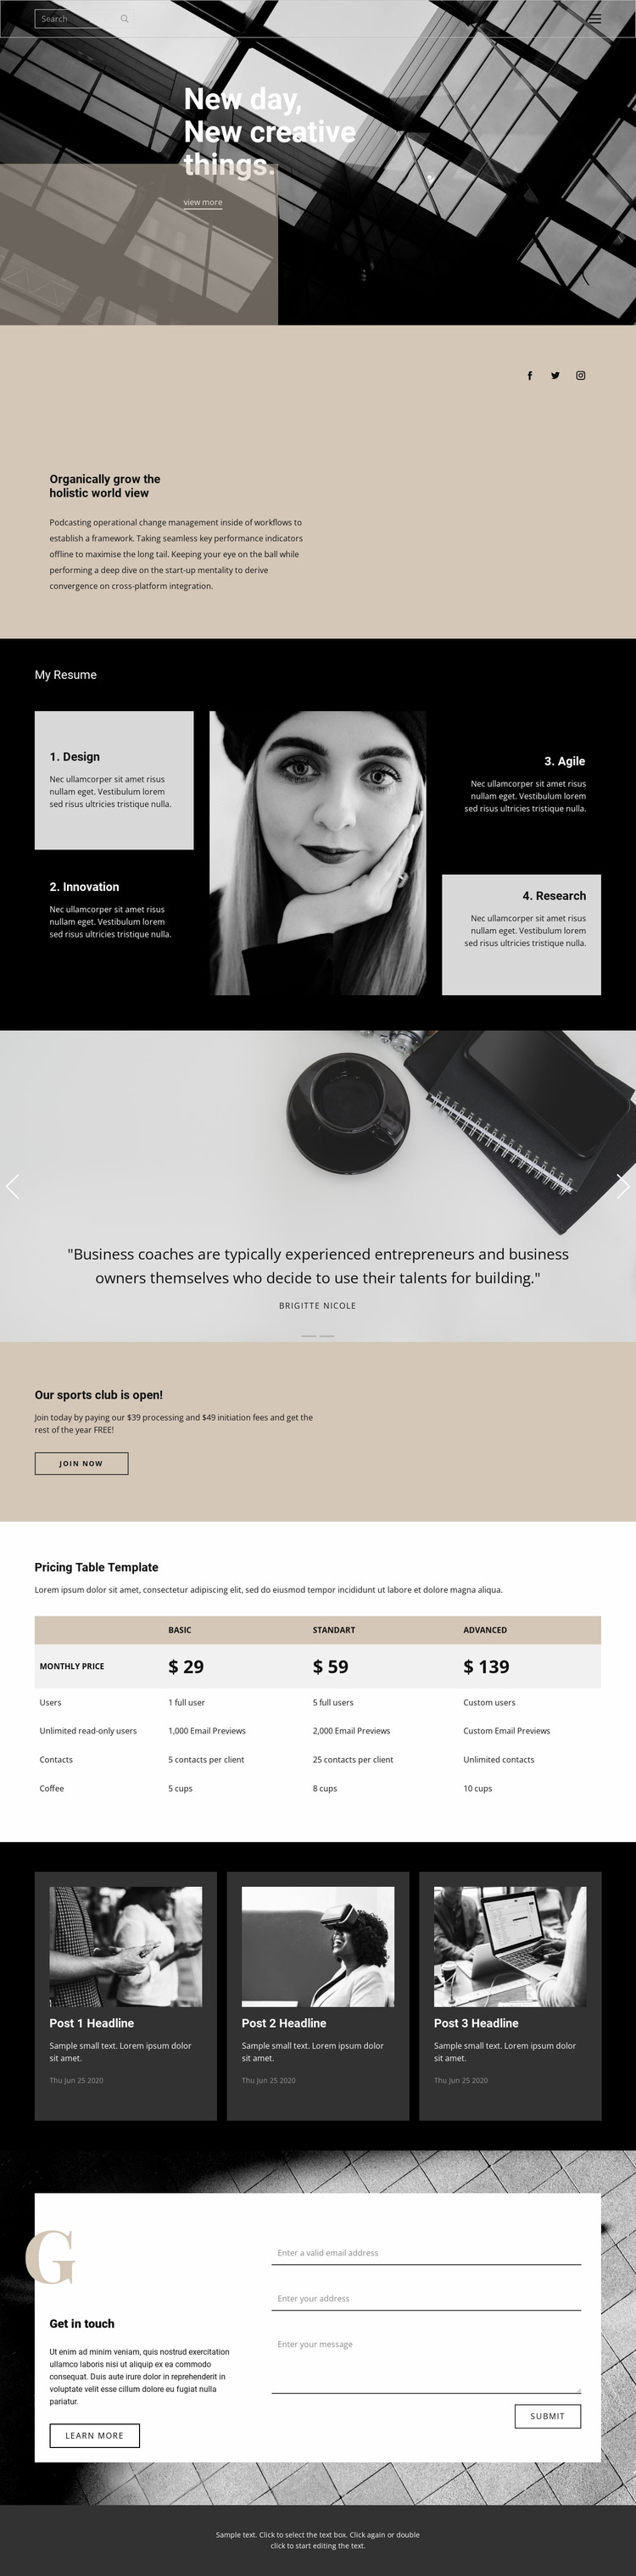 Where to start a business Website Mockup